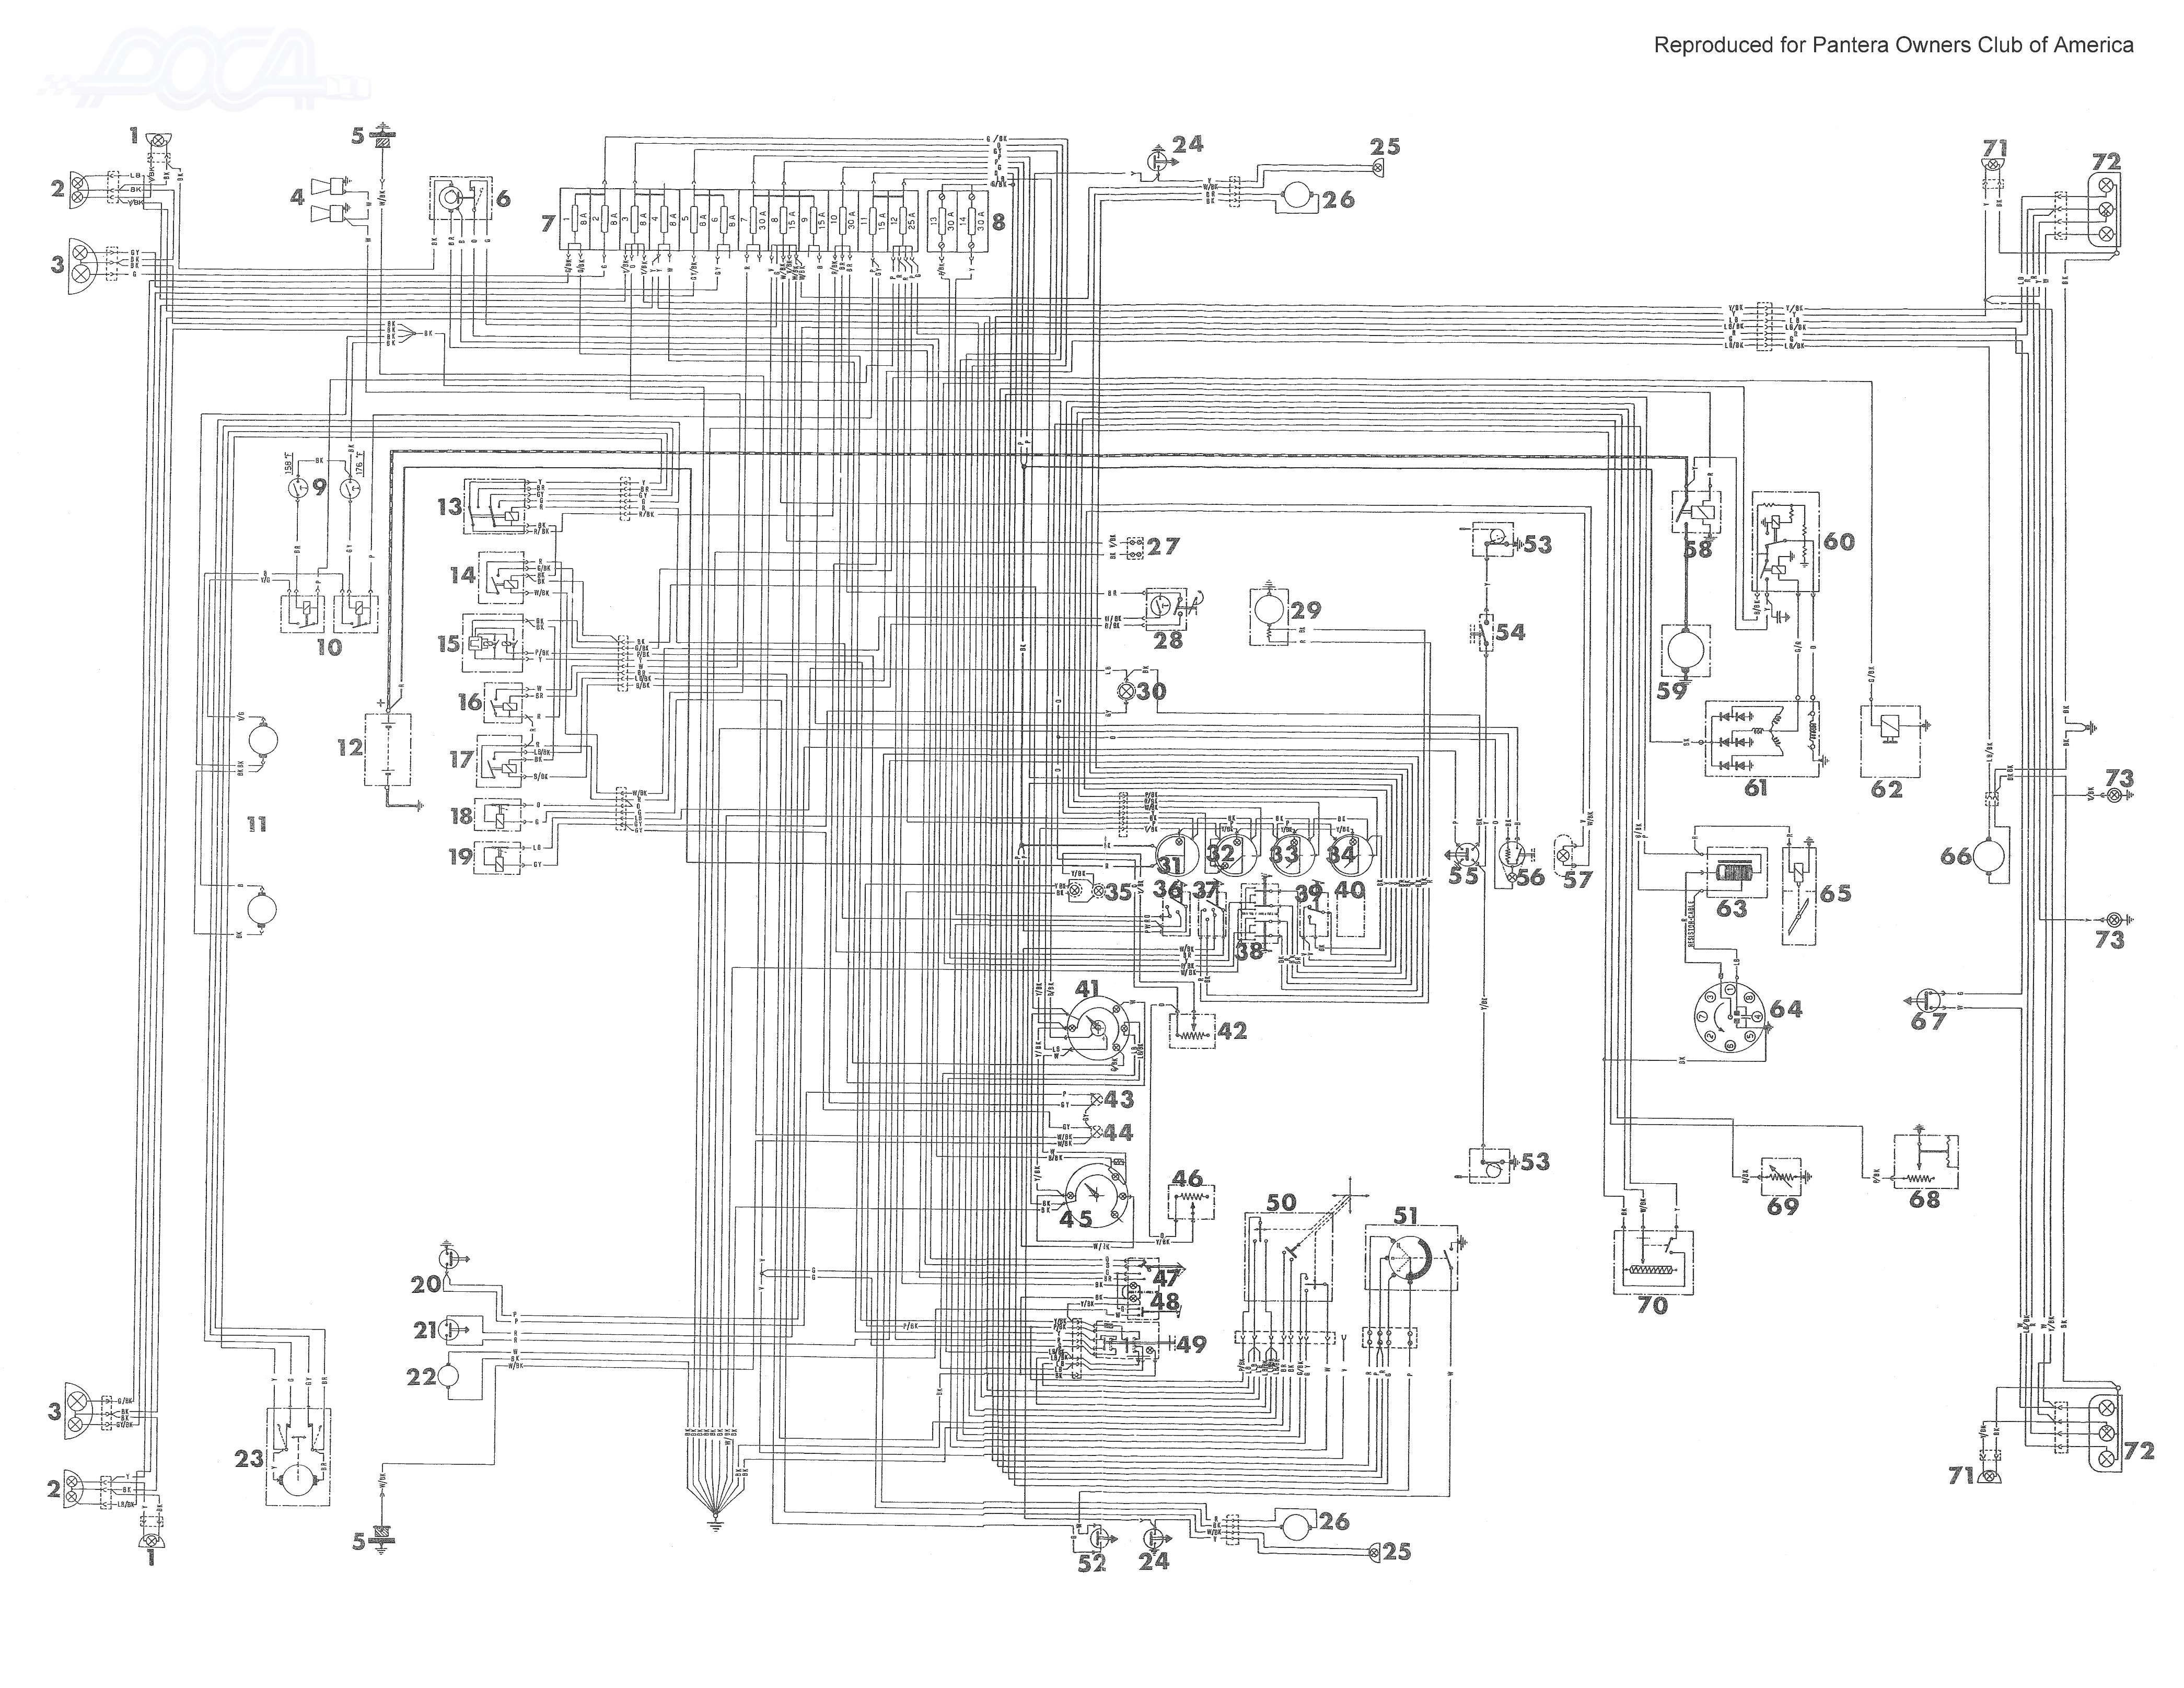 Astounding daihatsu mira l200s wiring diagram contemporary best nice microtech lt10s wiring diagram gallery electrical circuit asfbconference2016 Choice Image